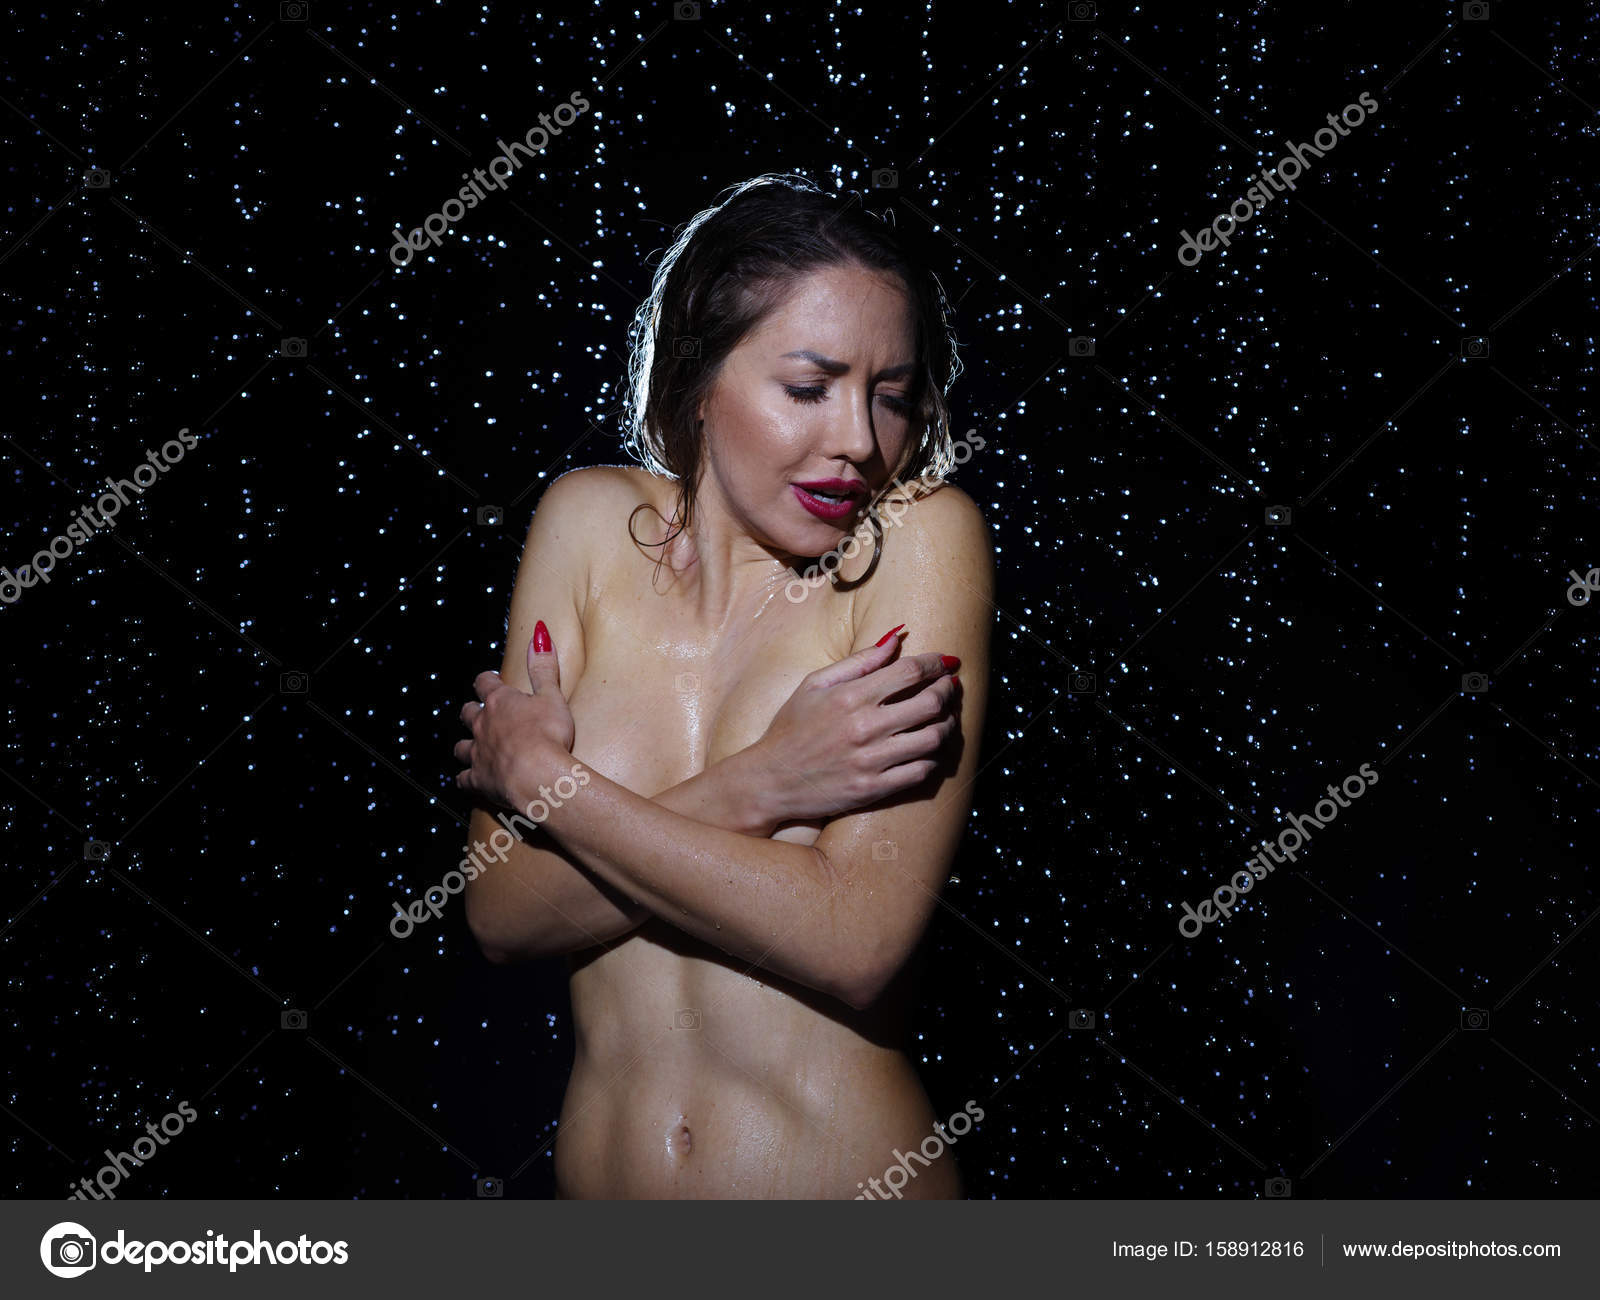 Cold in naked pic posing shivering woman